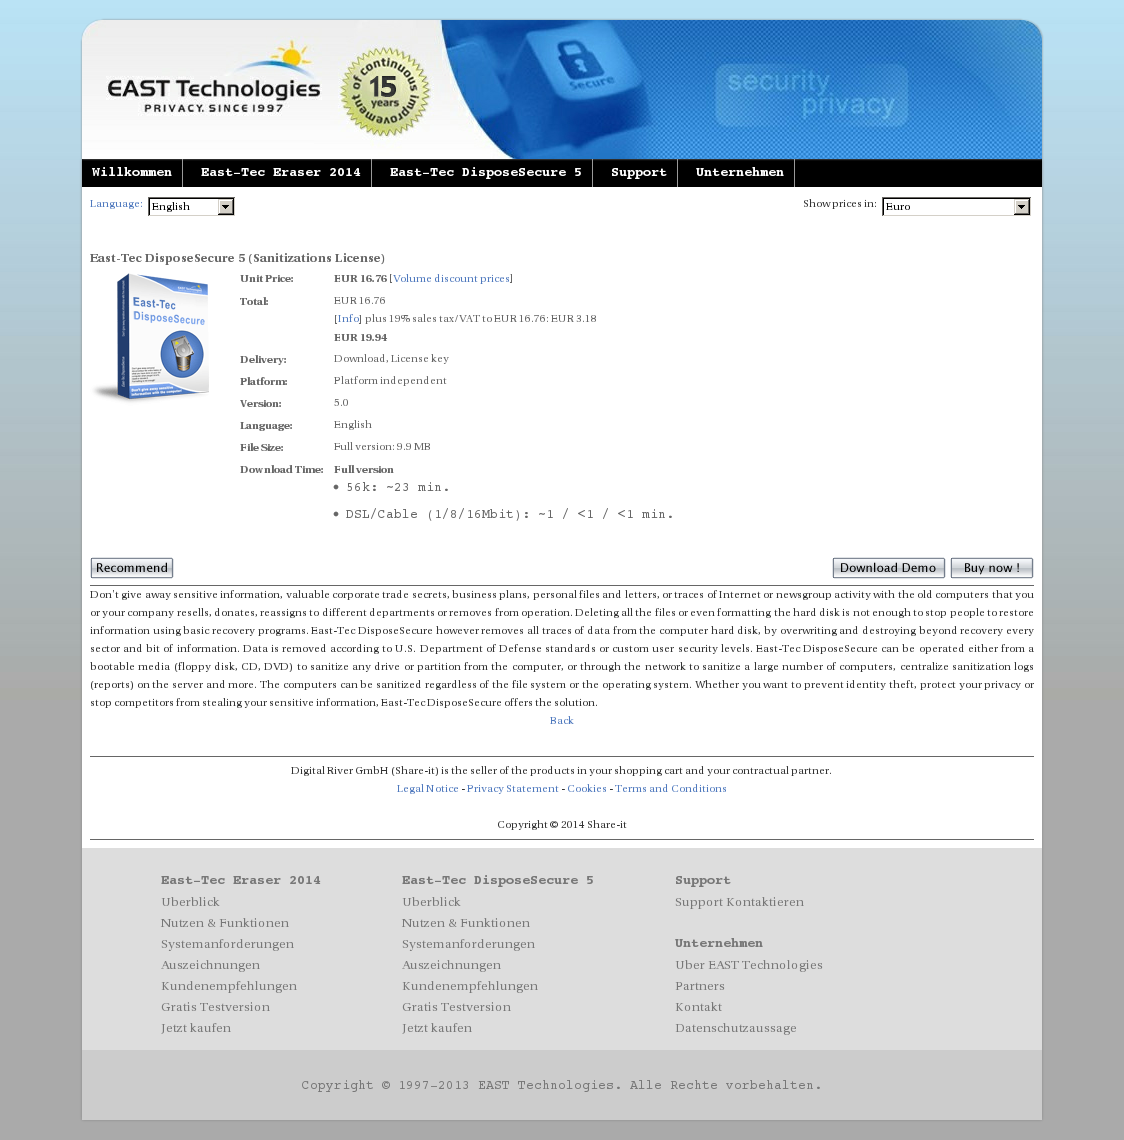 East-Tec DisposeSecure 5 (Sanitizations License)